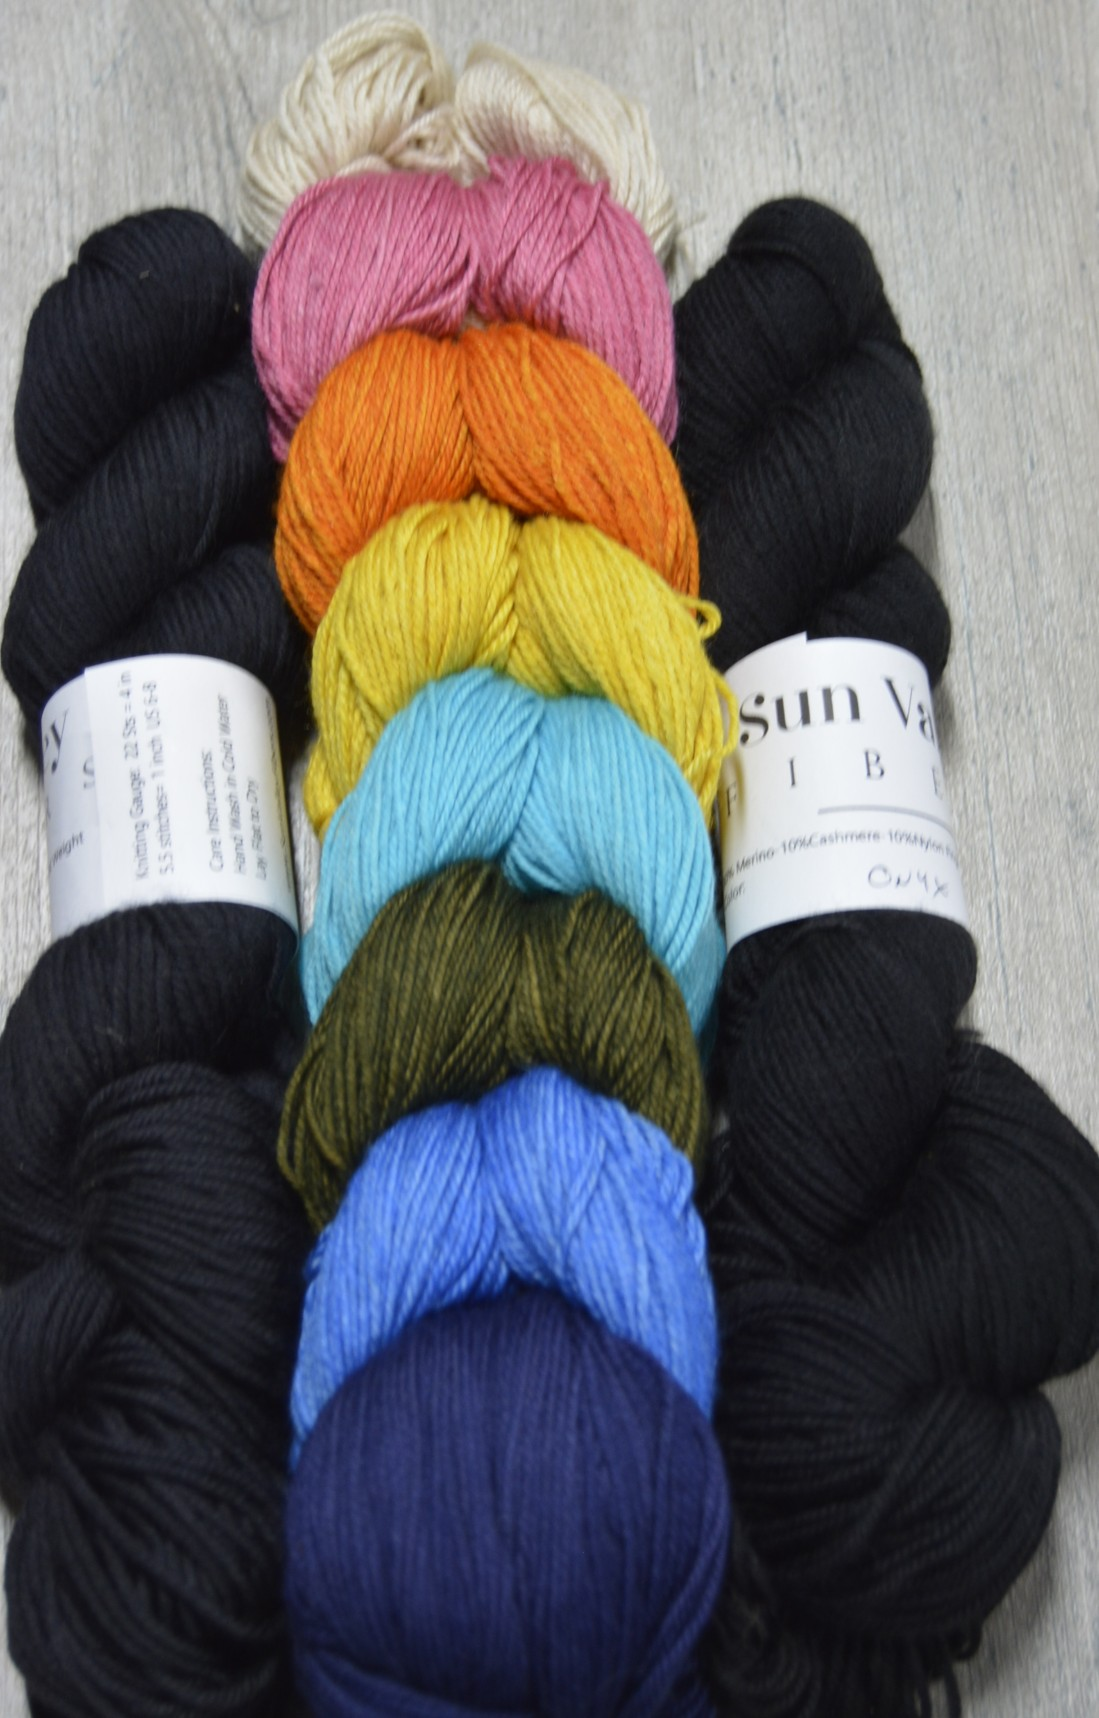 Painted Bricks Jewel Tones contains 8  100 yard skeins of the following colors:  Whisper, Persuasion, Tequila Sunrise, Coreopsis, Refreshing, Sherwood Forest, Cornflower, Ambassador And 2  400 yard skeins of Onyx.